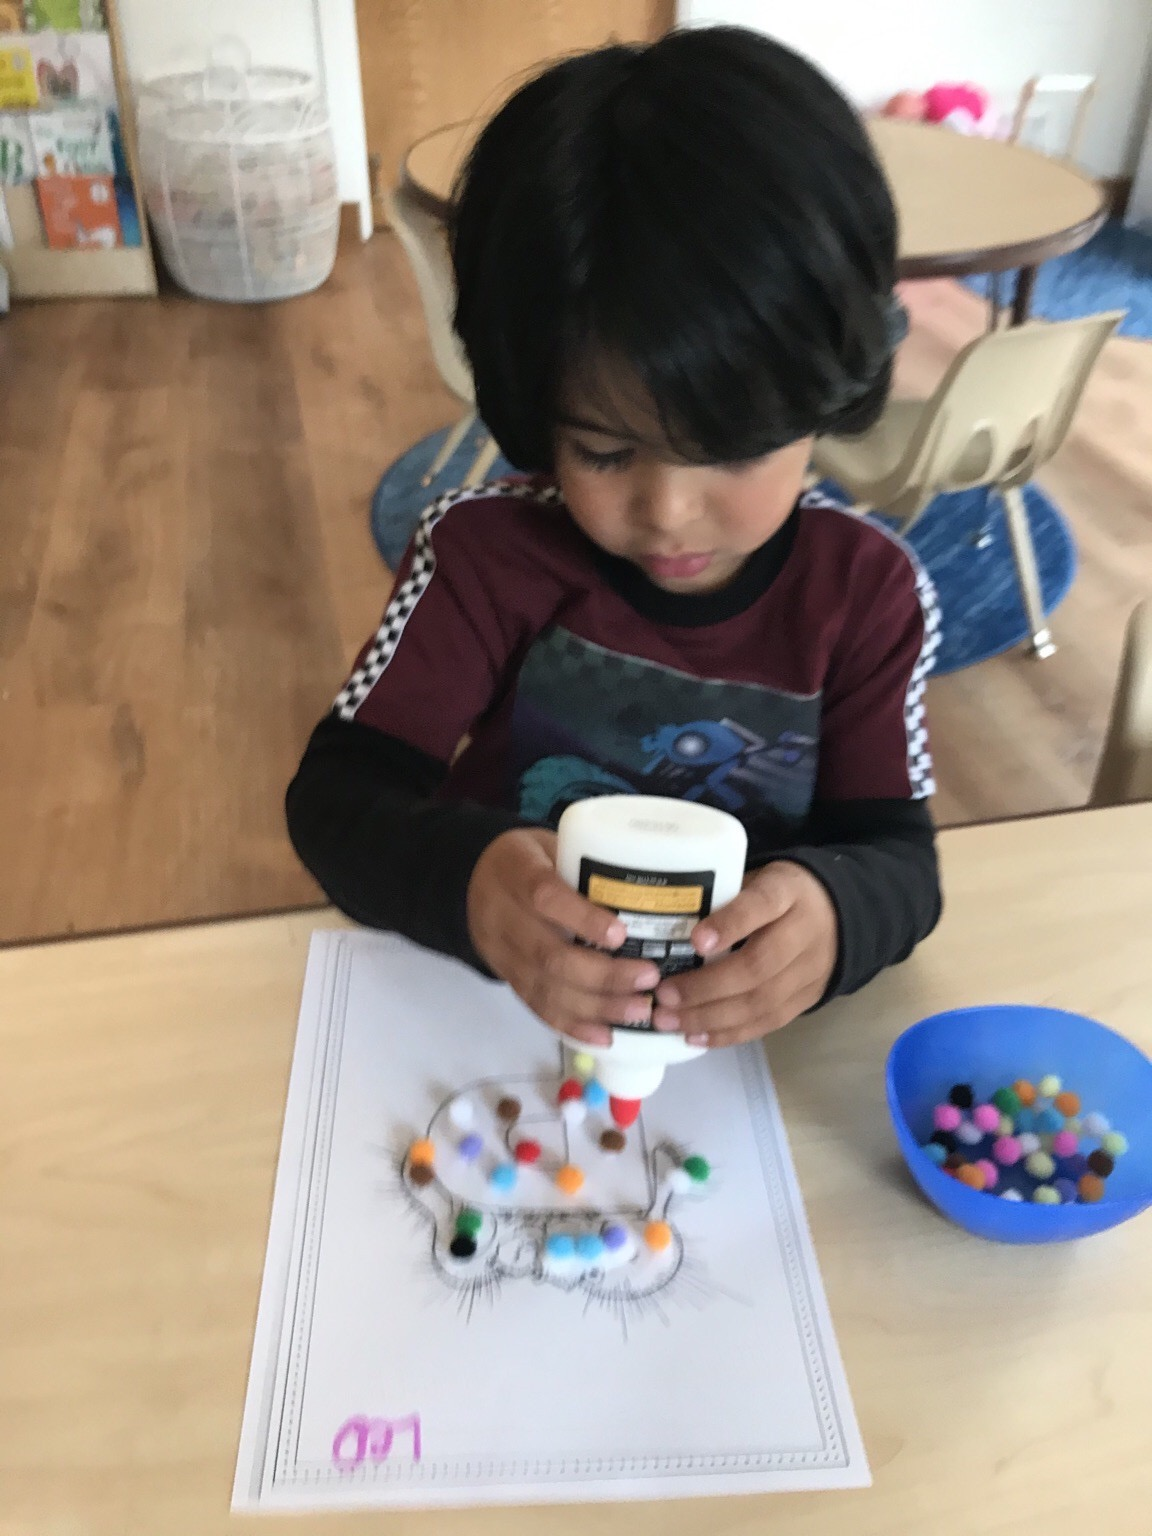 Art - Student gluing beads to drawing